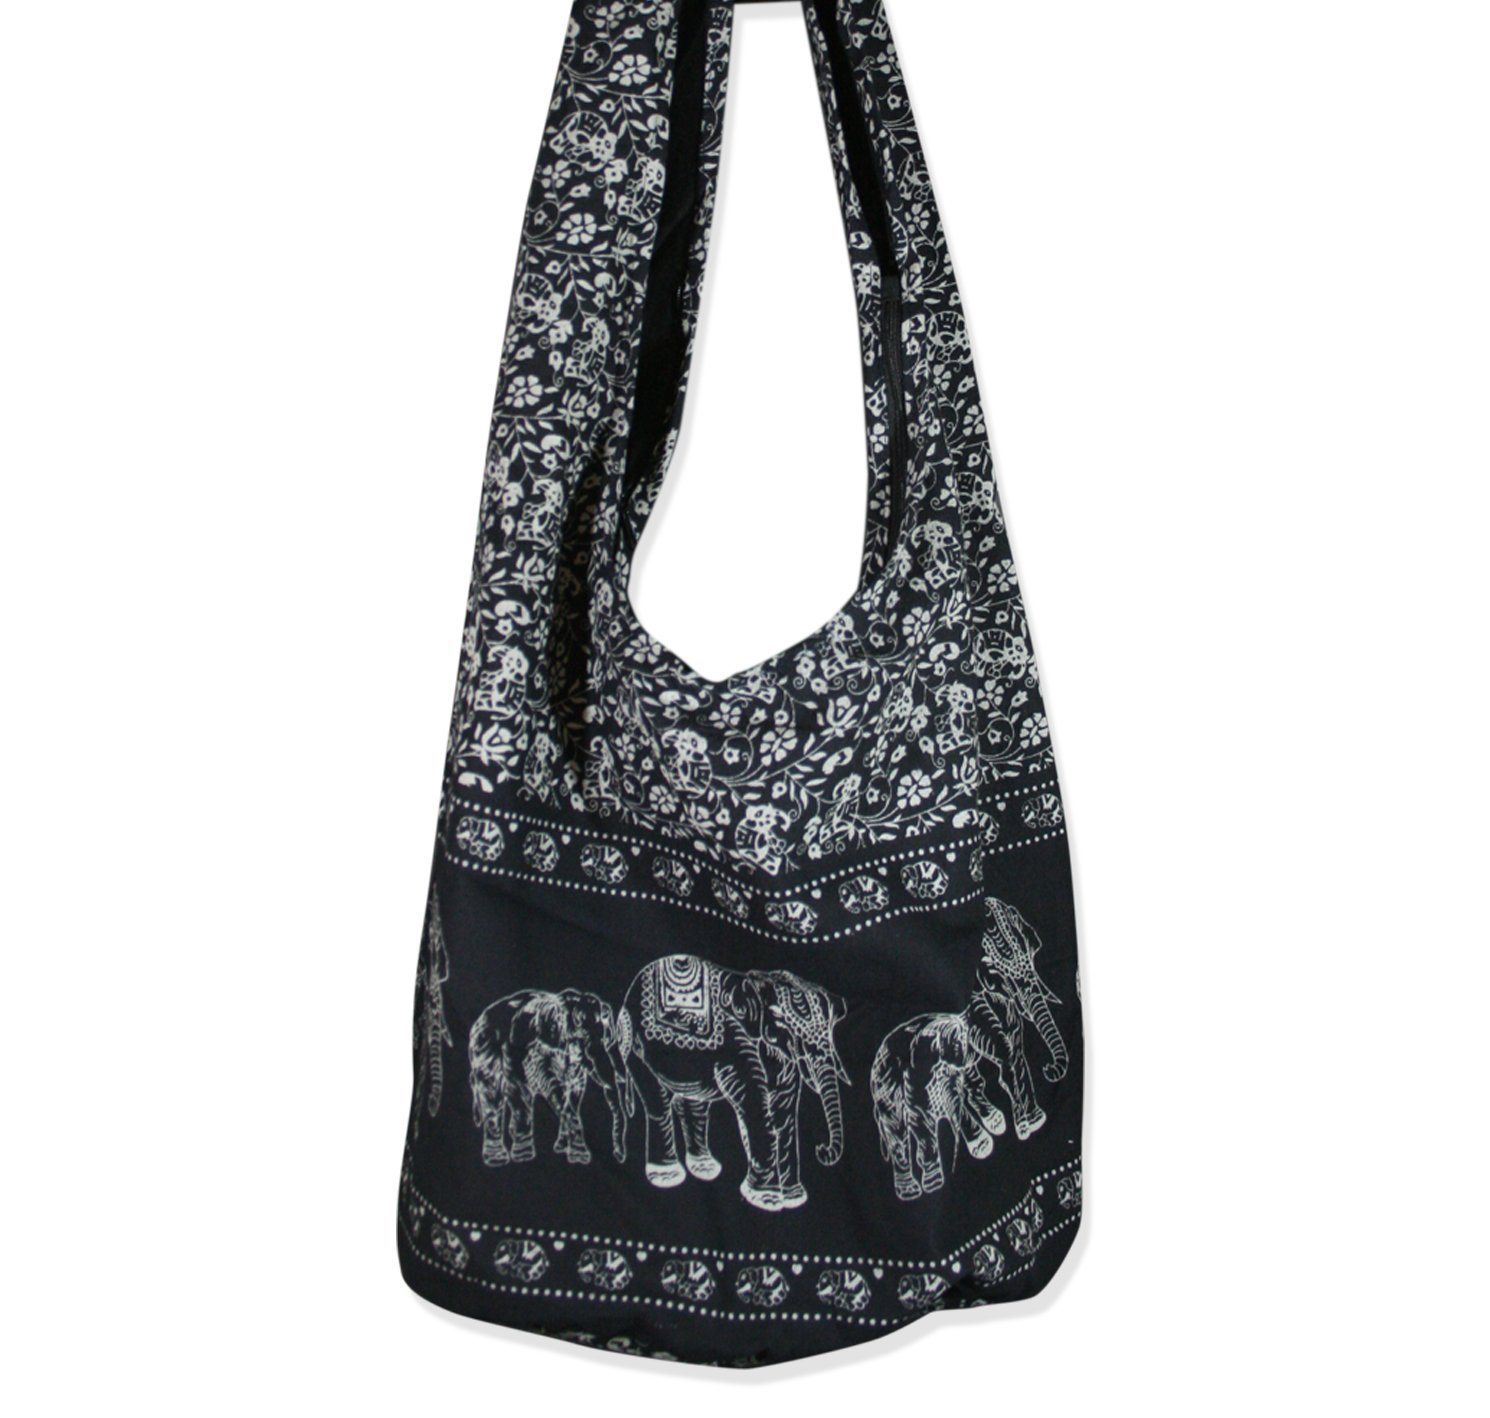 Amazon.com : Hippie Elephant Sling Crossbody Bag Purse Thai Top ...